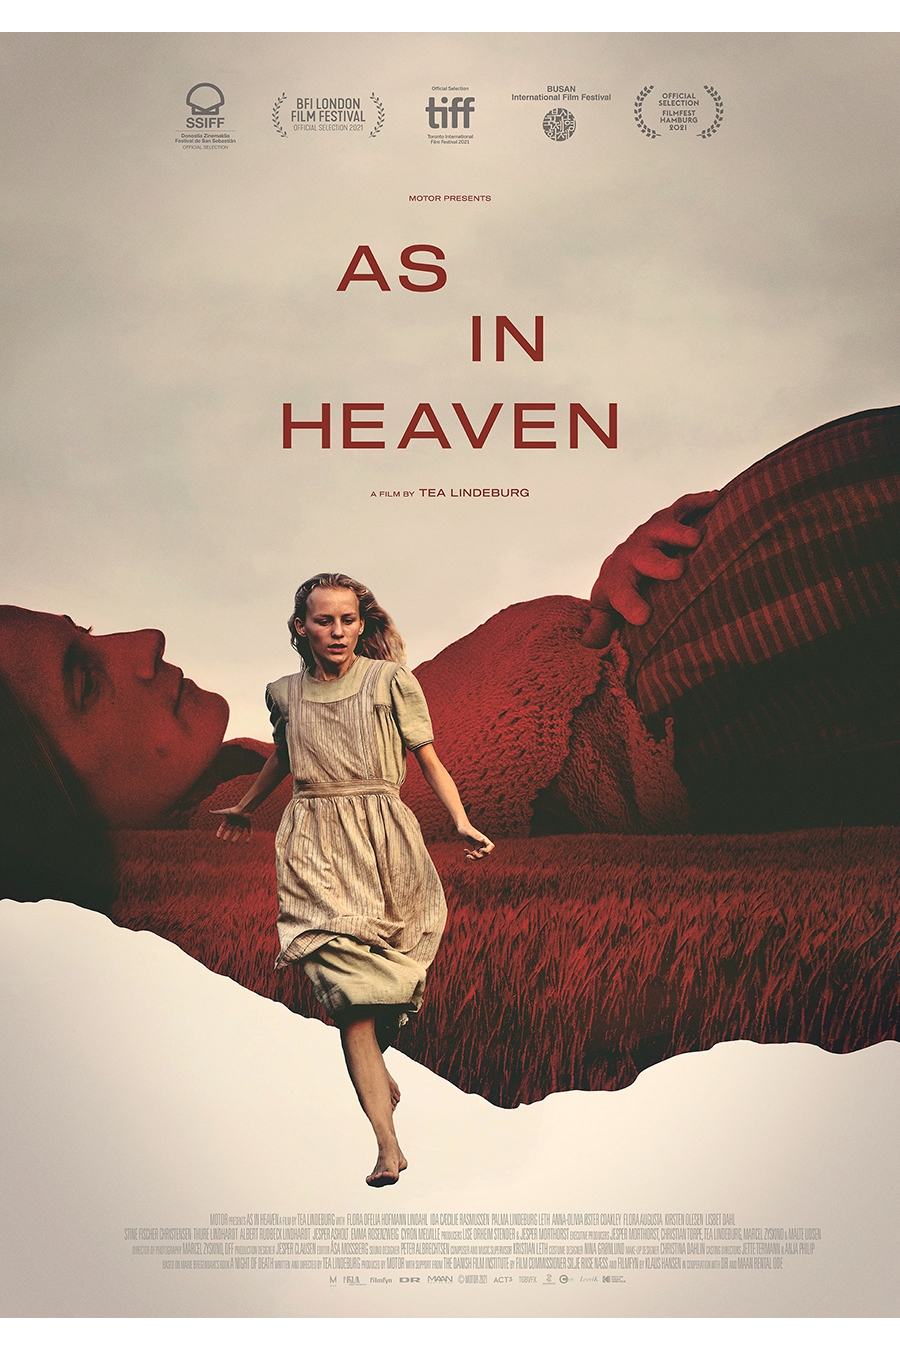 As in Heave film poster